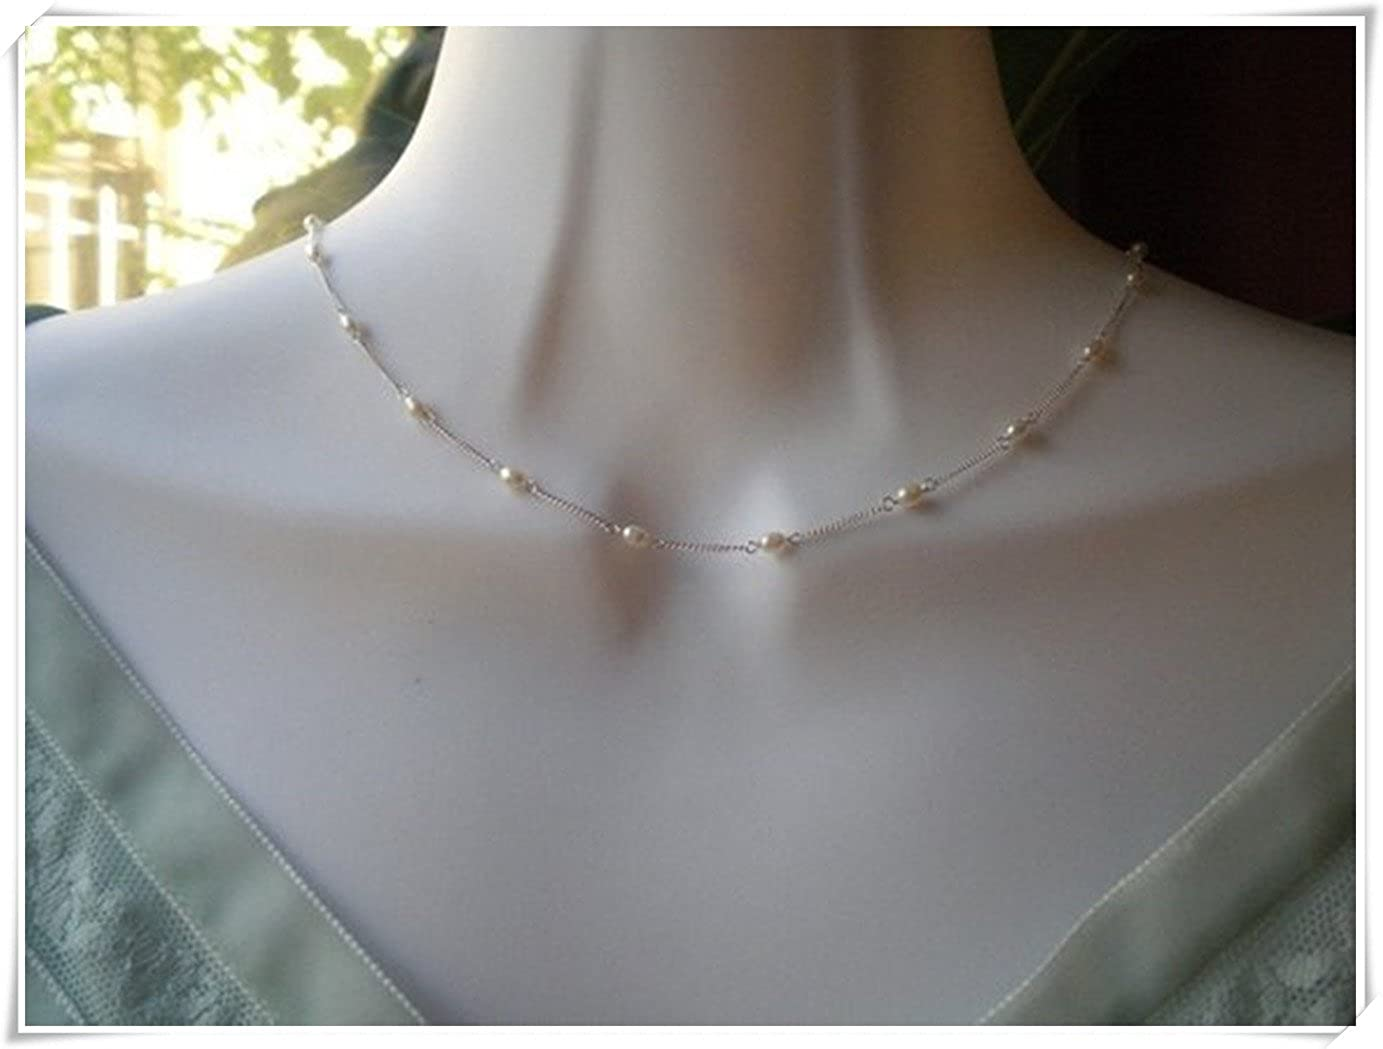 No See Long Time White Pearls Bridal Wedding Birthday Gift For Wife Daughter Sister Niece Girlfriend Fiance